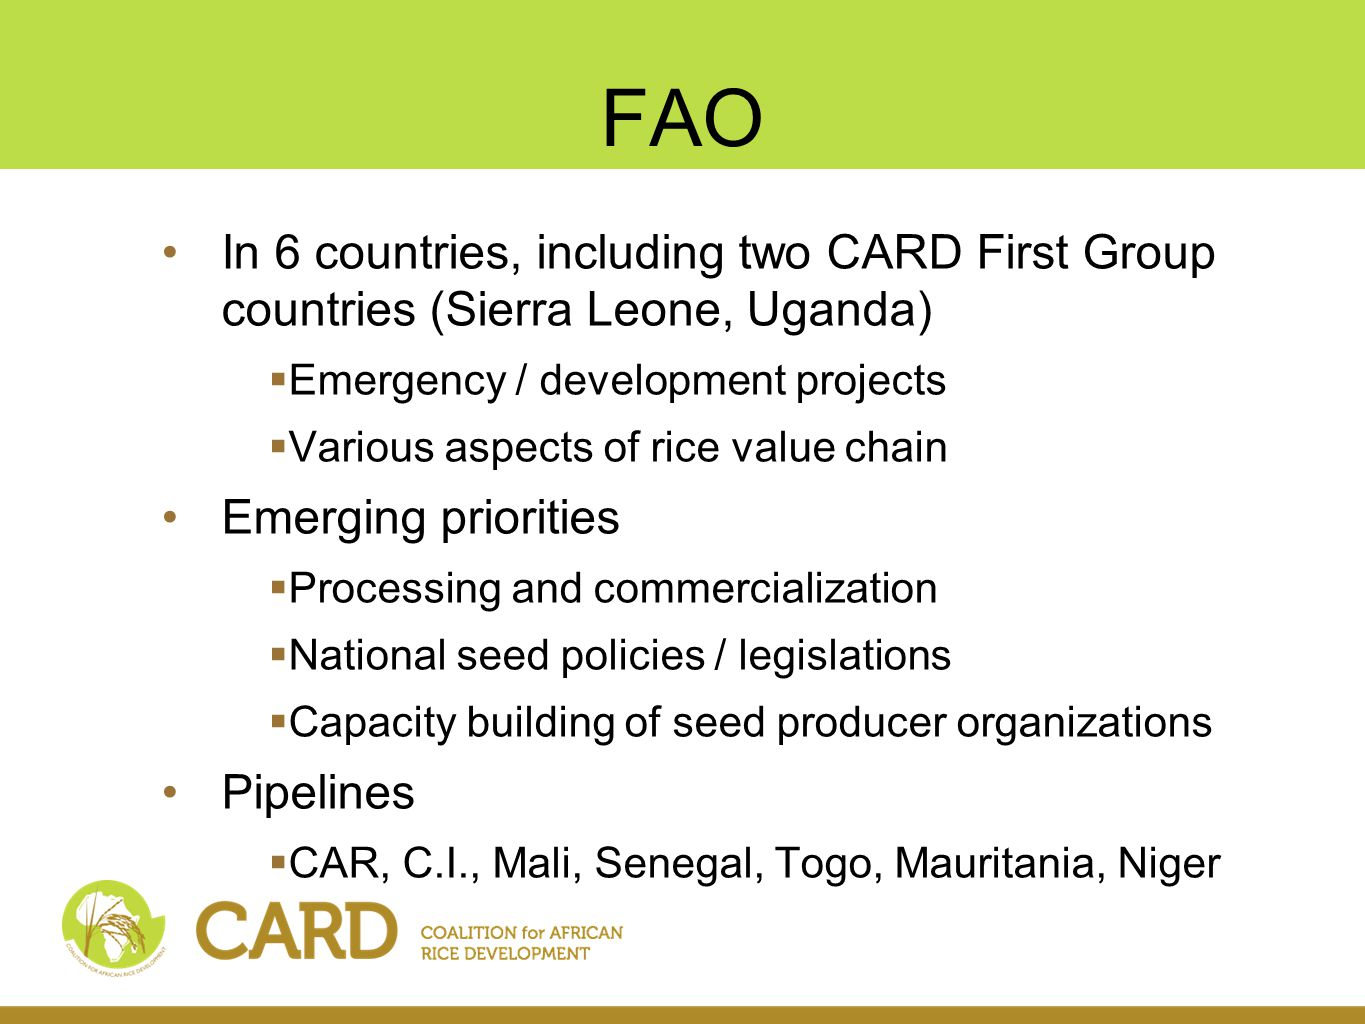 FAO In 6 countries, including two CARD First Group countries (Sierra Leone, Uganda)  Emergency / development projects  Various aspects of rice value chain Emerging priorities  Processing and commercialization  National seed policies / legislations  Capacity building of seed producer organizations Pipelines  CAR, C.I., Mali, Senegal, Togo, Mauritania, Niger